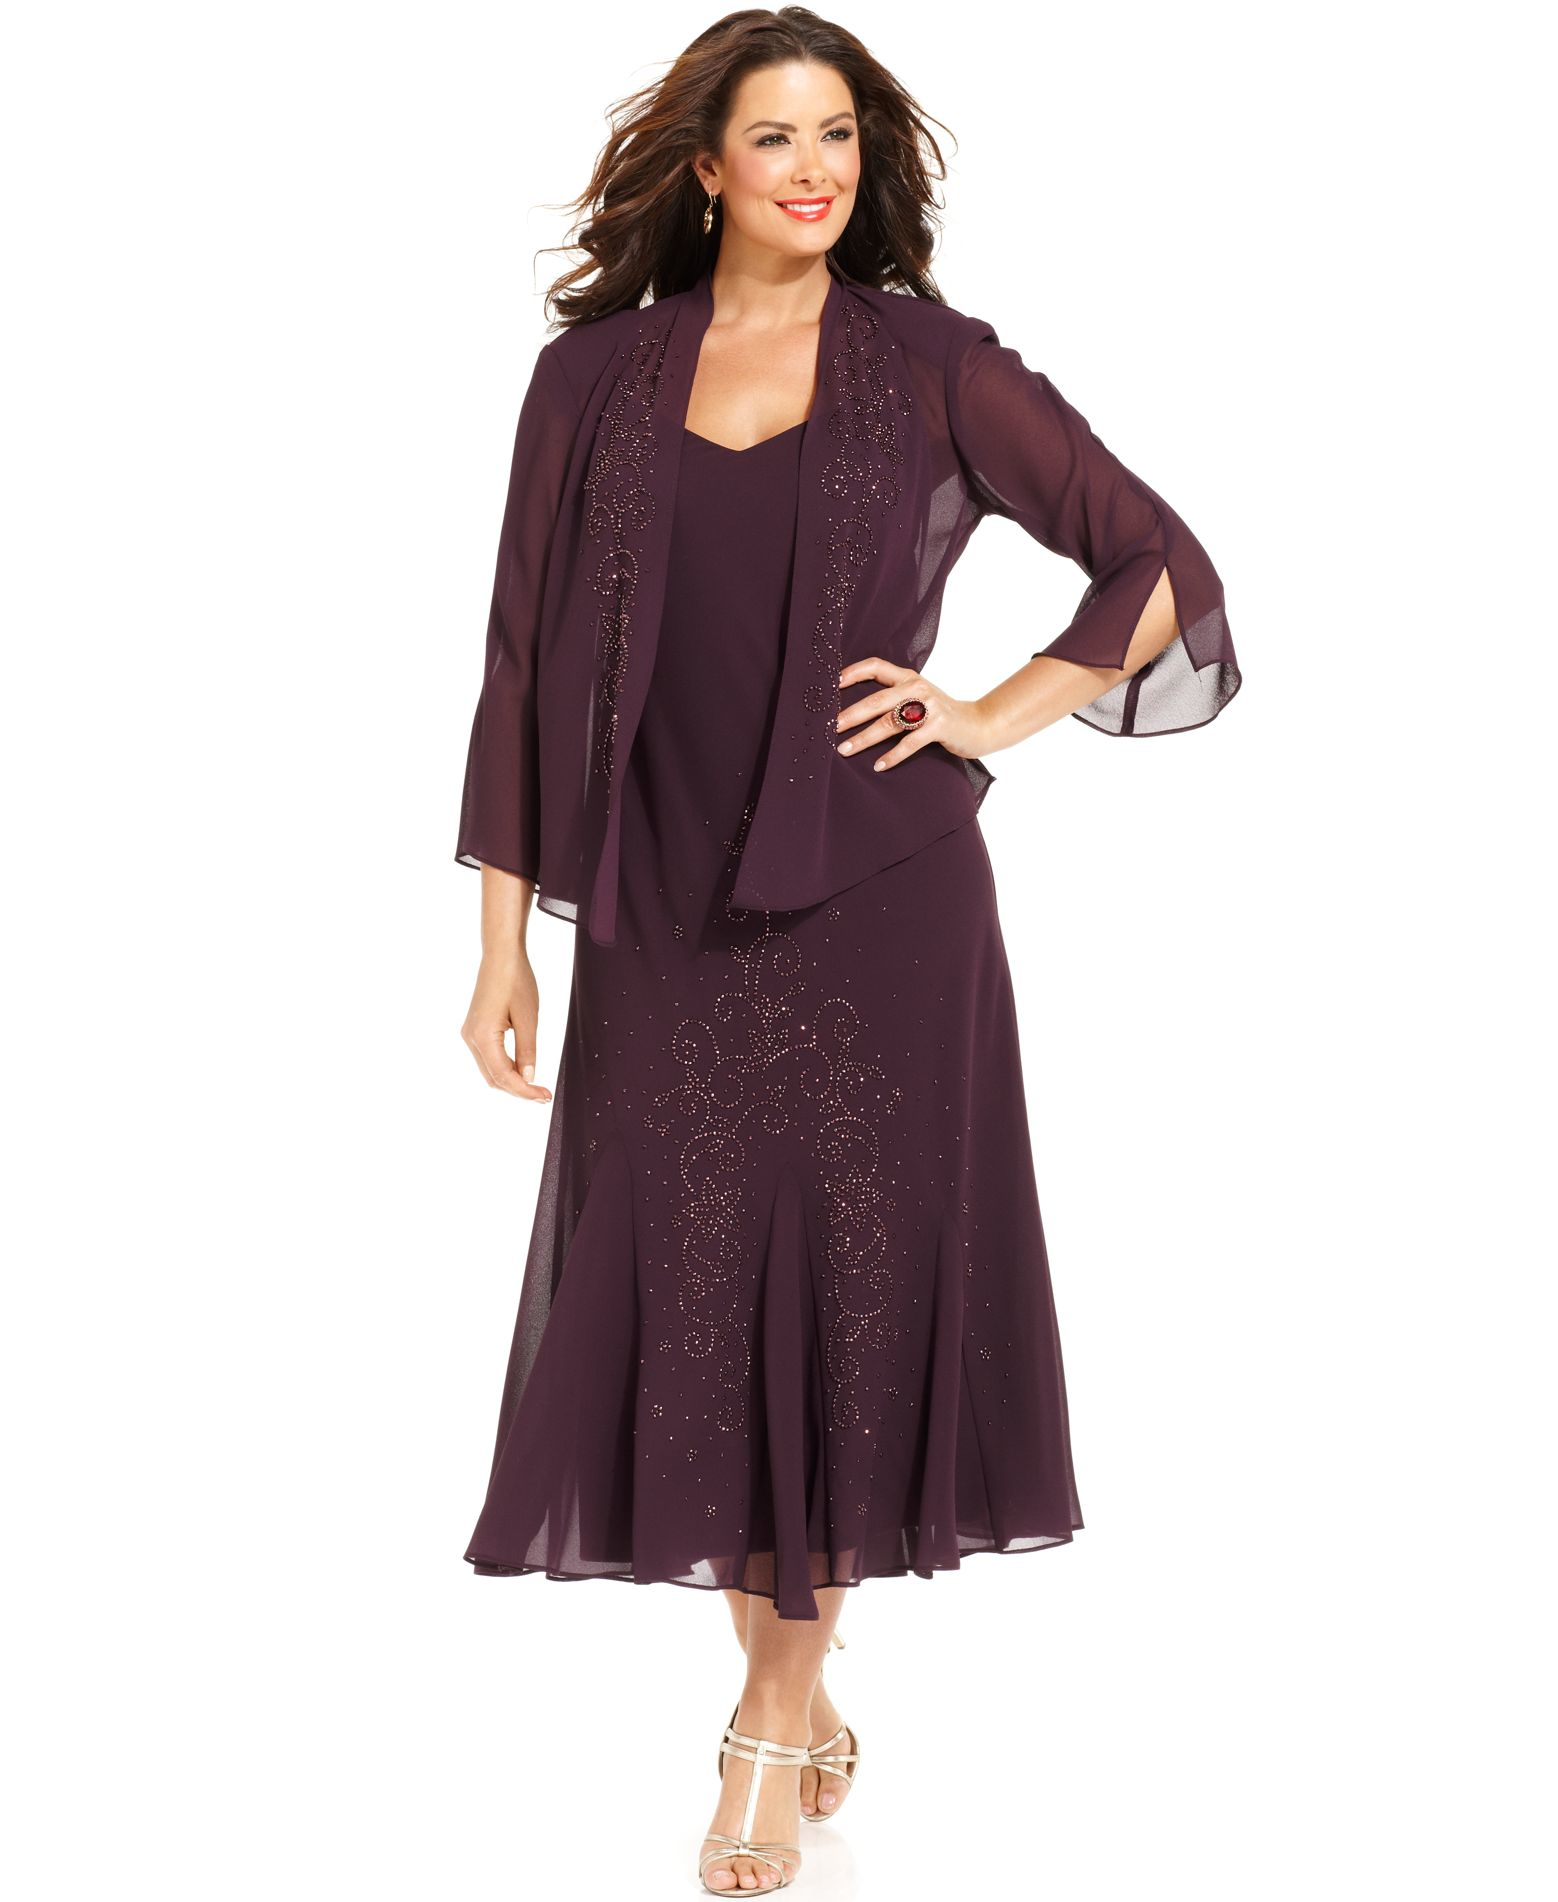 R & m richards Plus Size Beaded V neck Dress And Jacket in